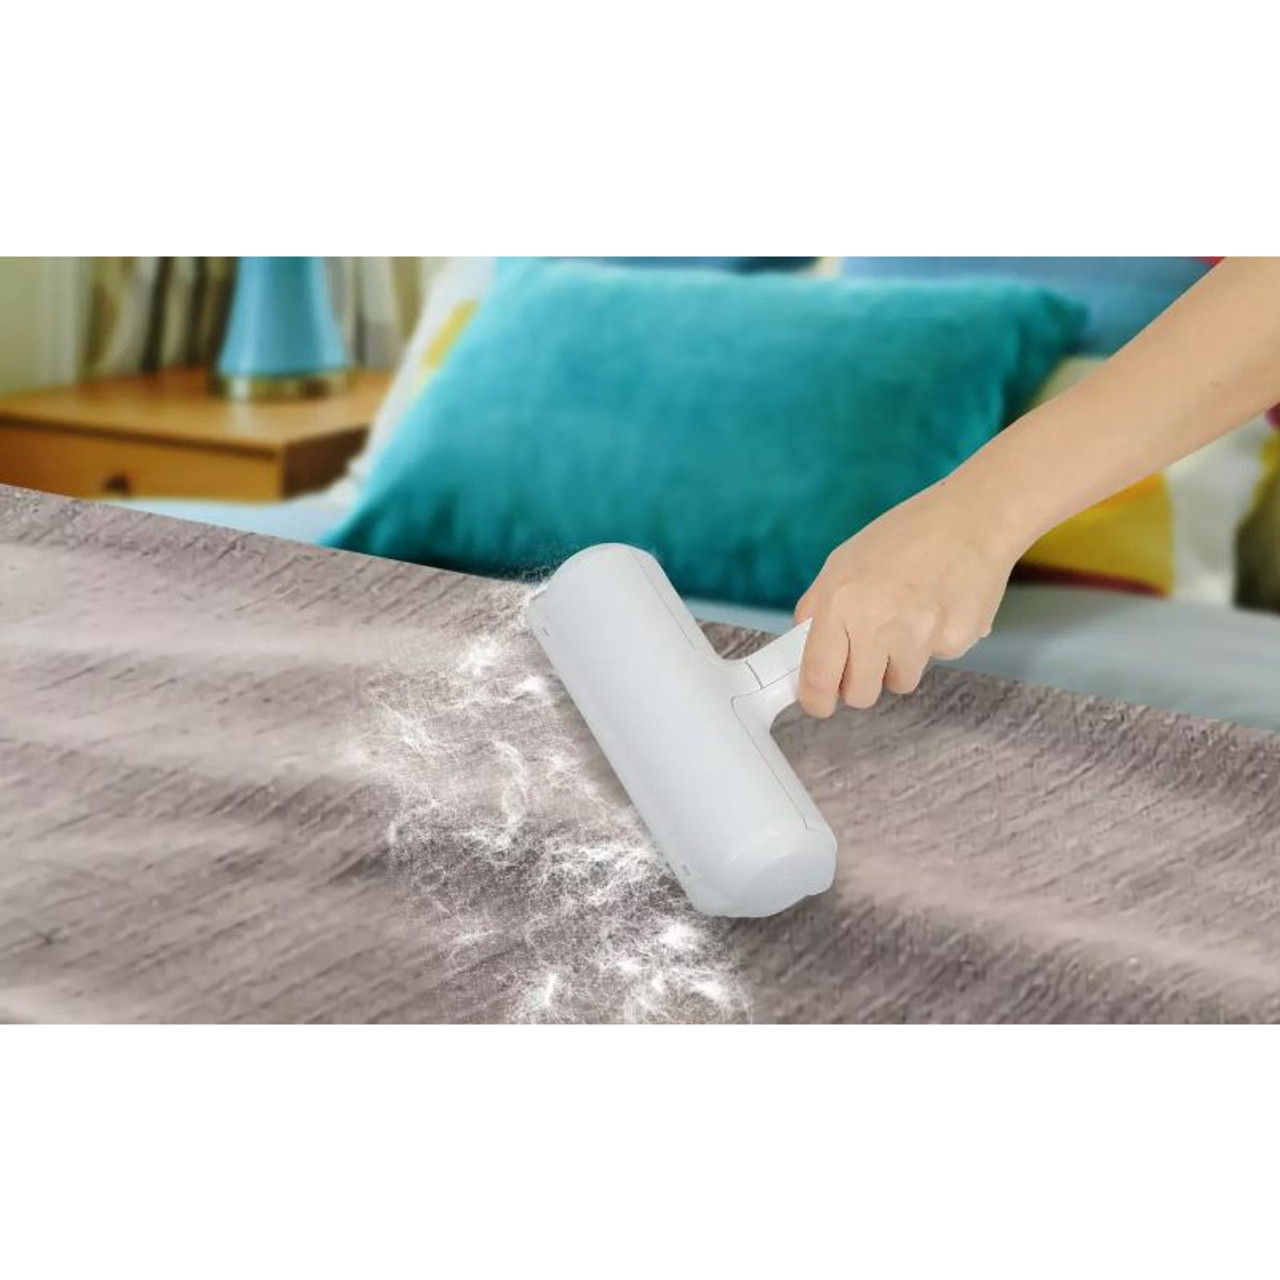 Reusable Pet Hair Remover Roller, Lint Roller, Cleaning Brush